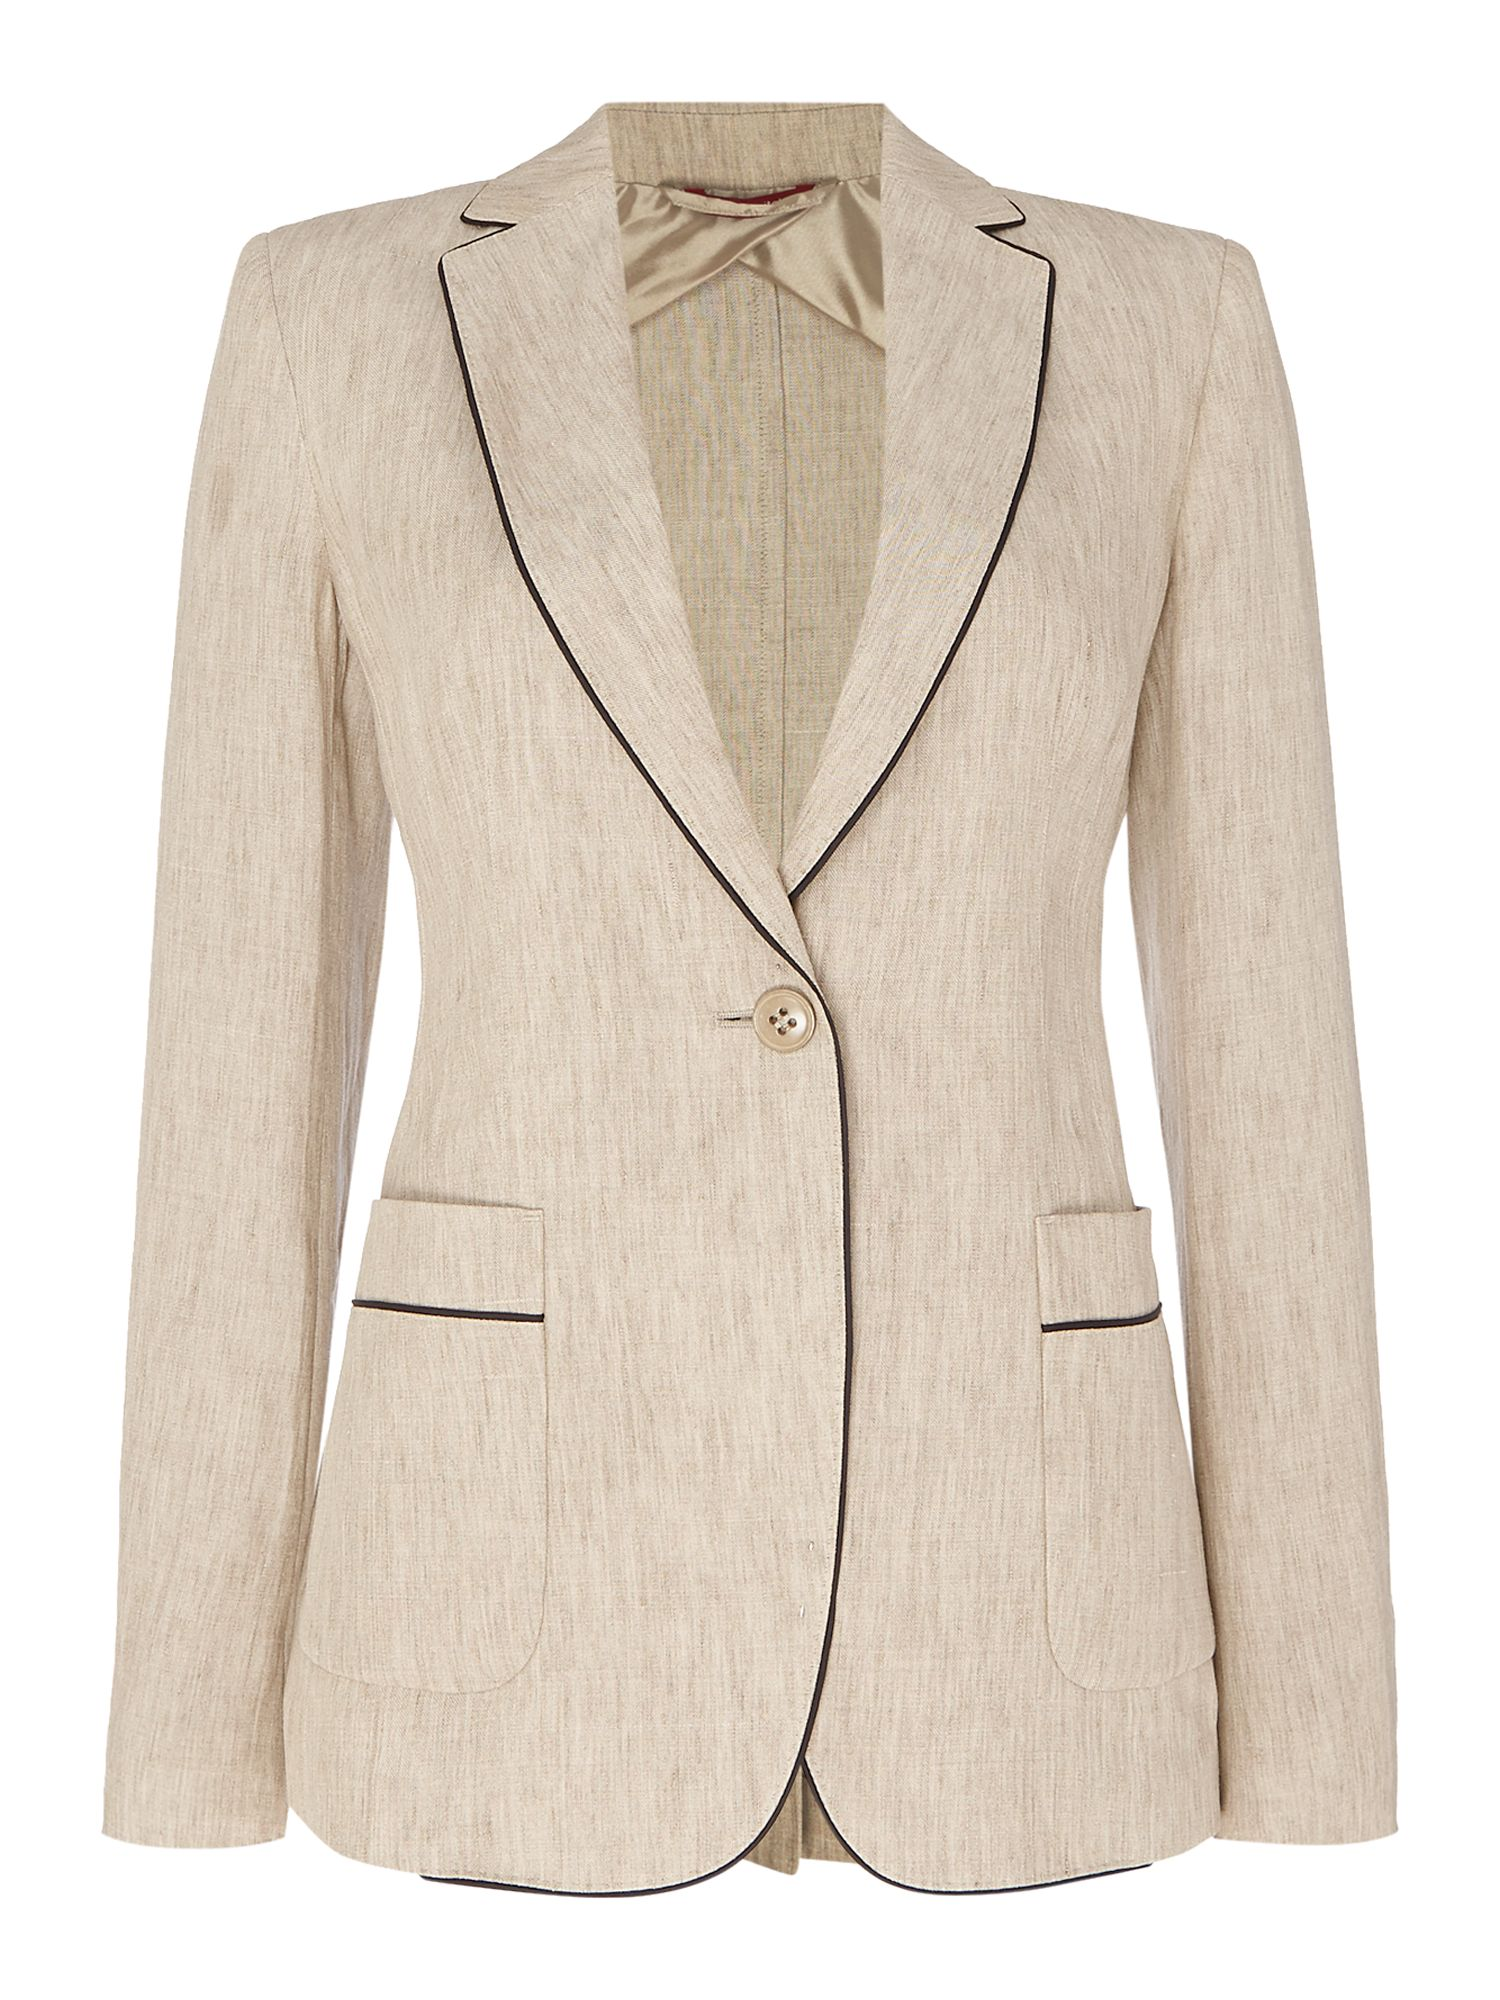 Max Mara Studio LEPANTO linen jacket with piping detail, Khaki